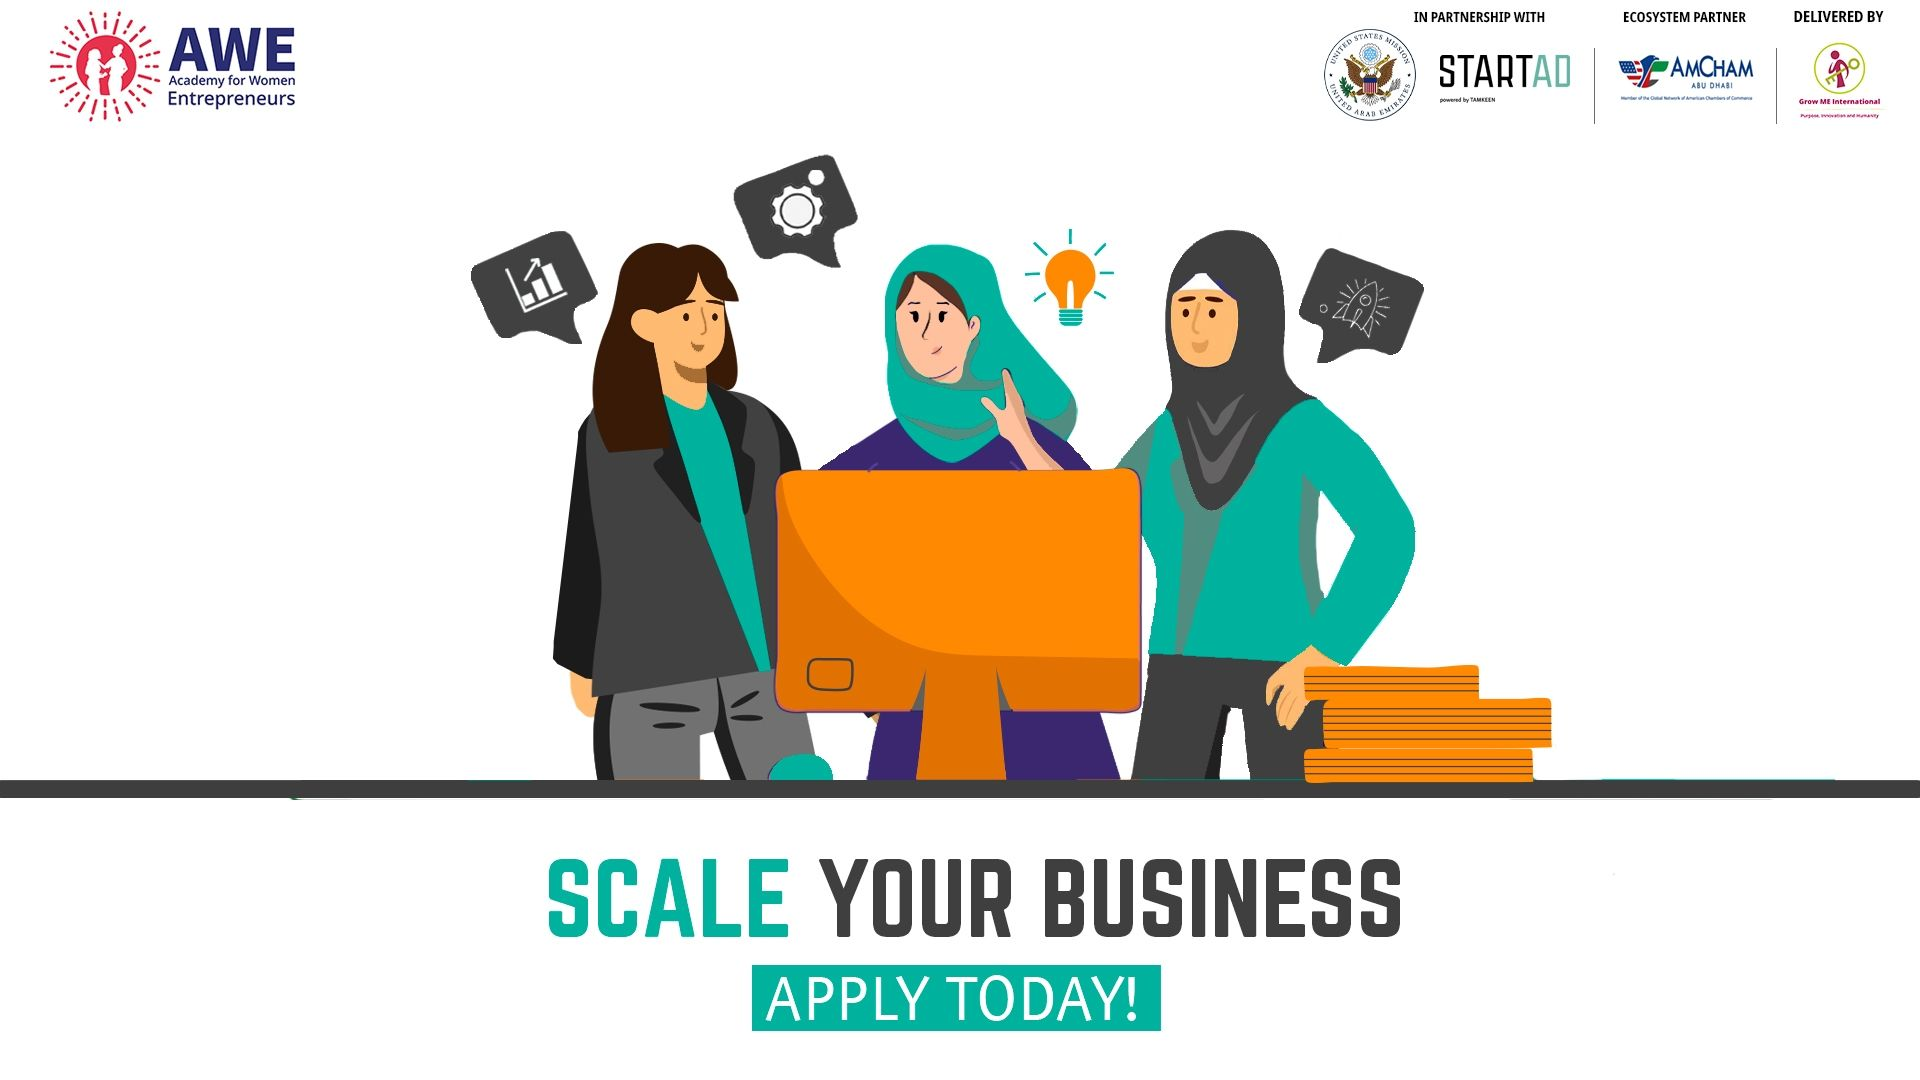 Female-owned startups: Learn, network, and grow with the Academy for Women Entrepreneurs UAE 2021